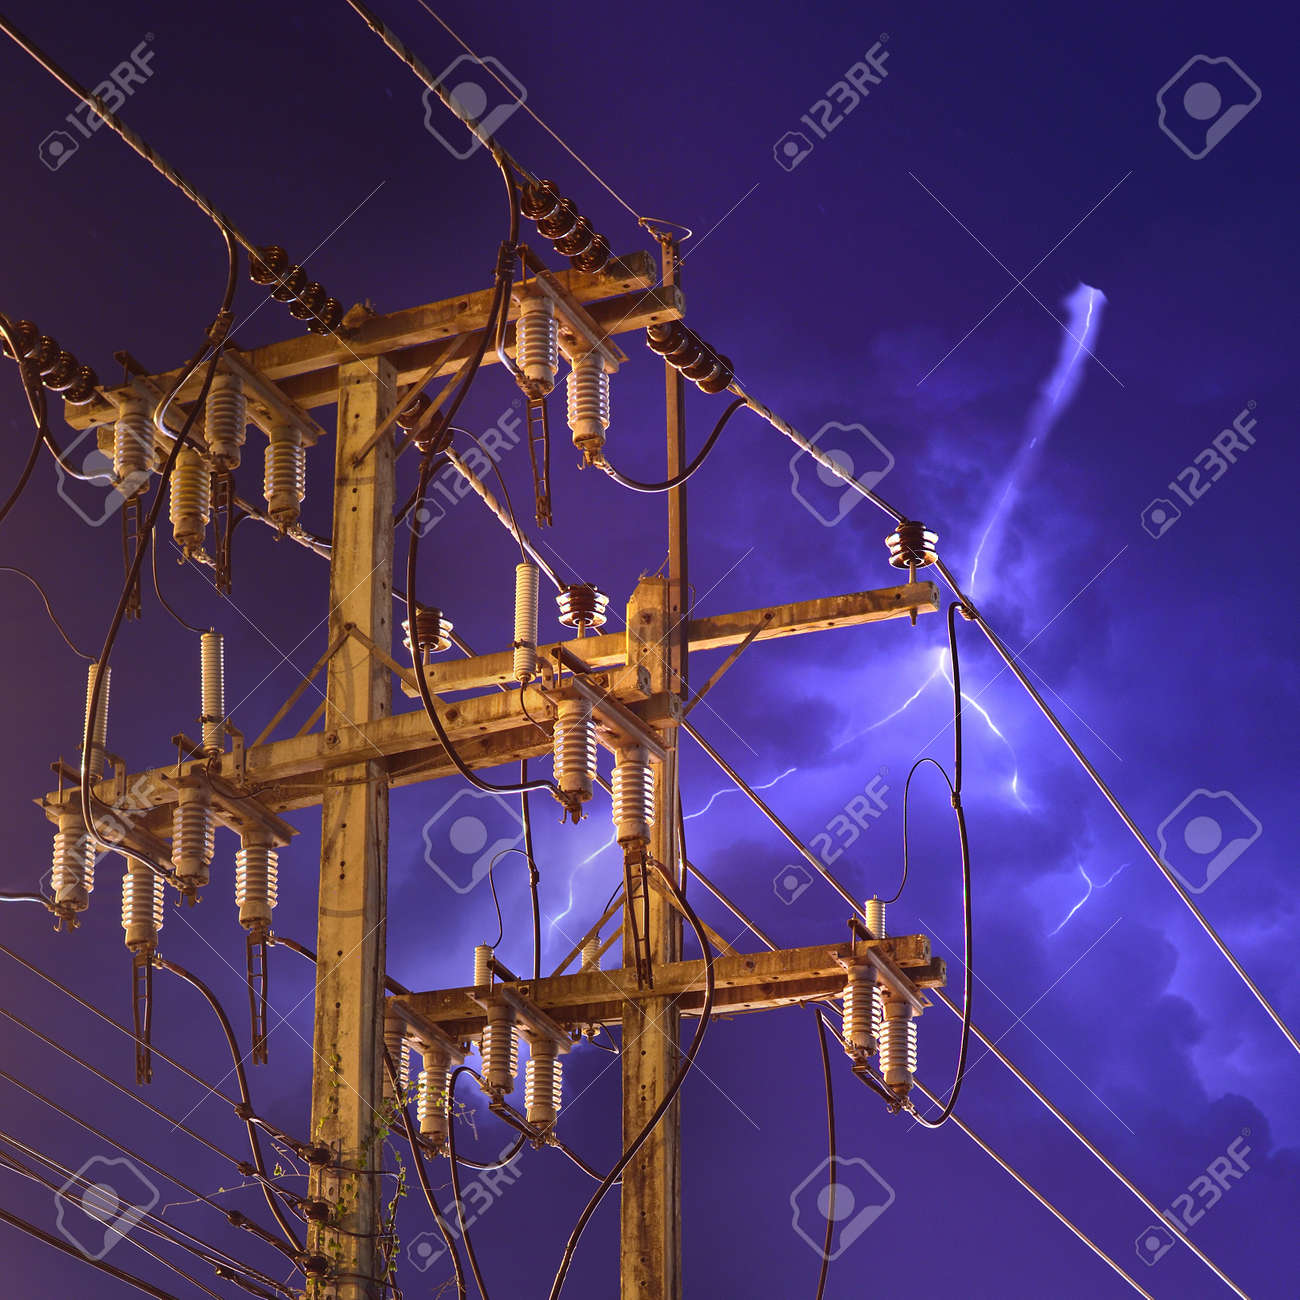 electricity with storm Stock Photo - 14010111